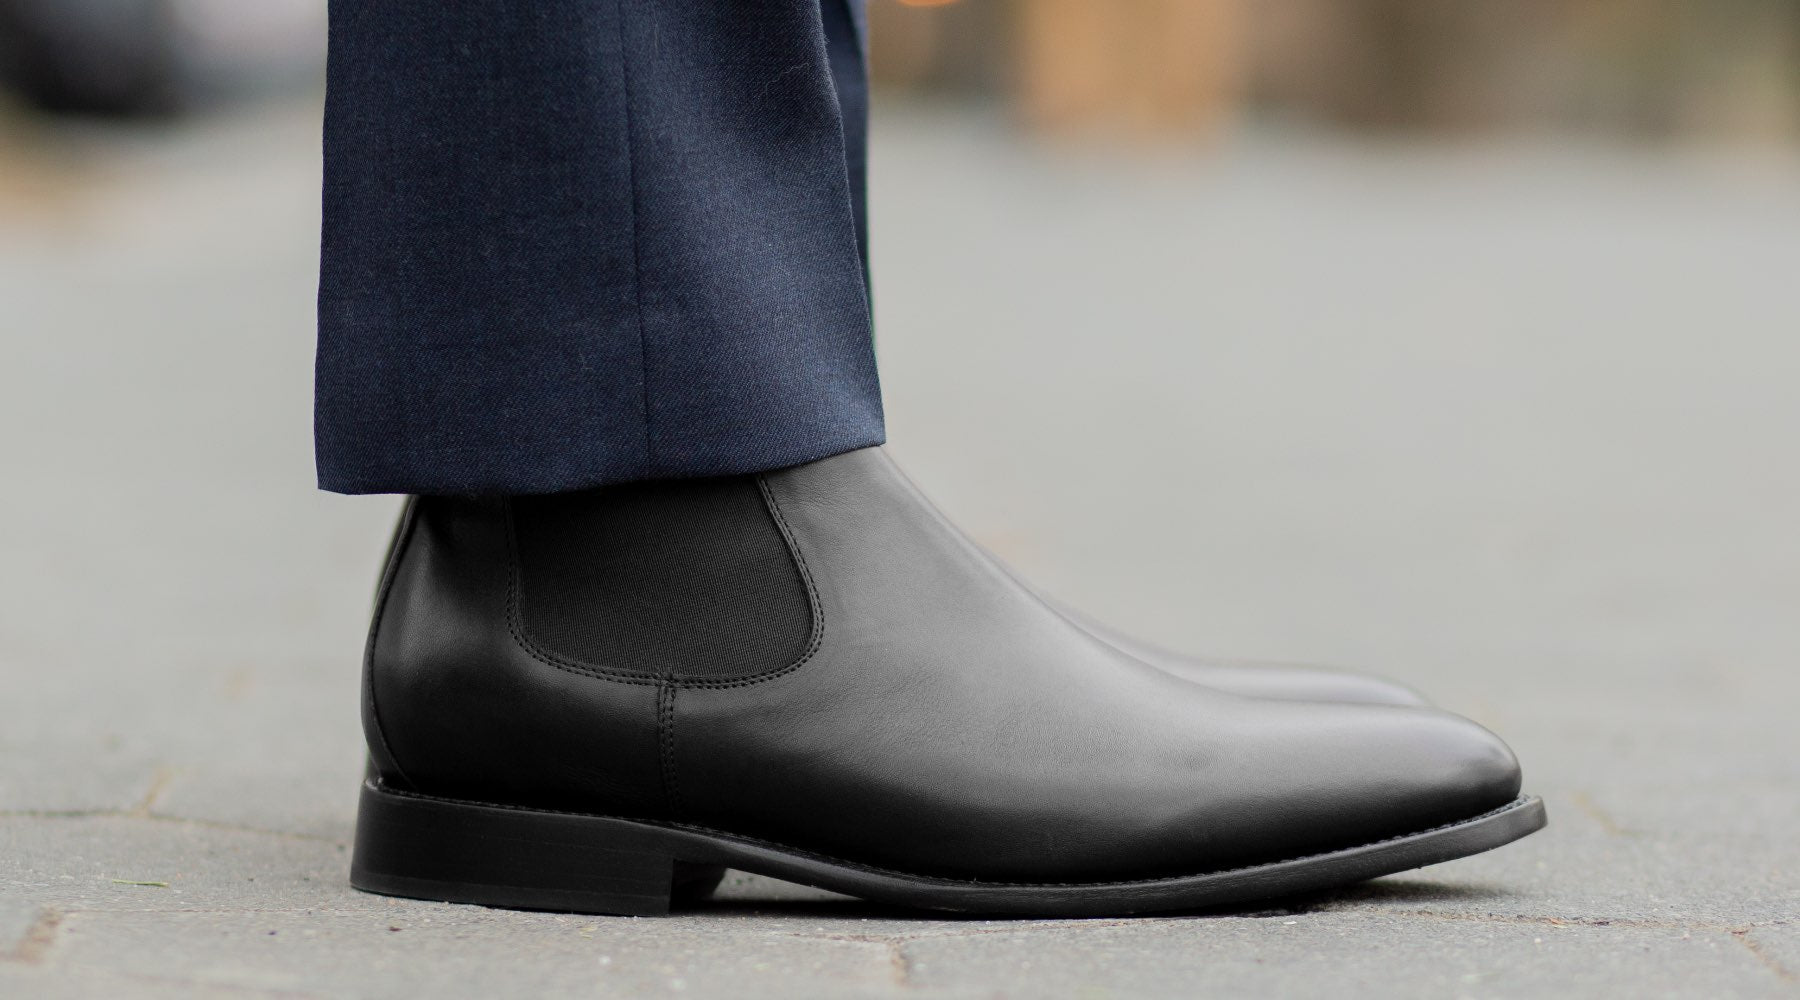 The Best Men's Chelsea Boots: The Cavalier